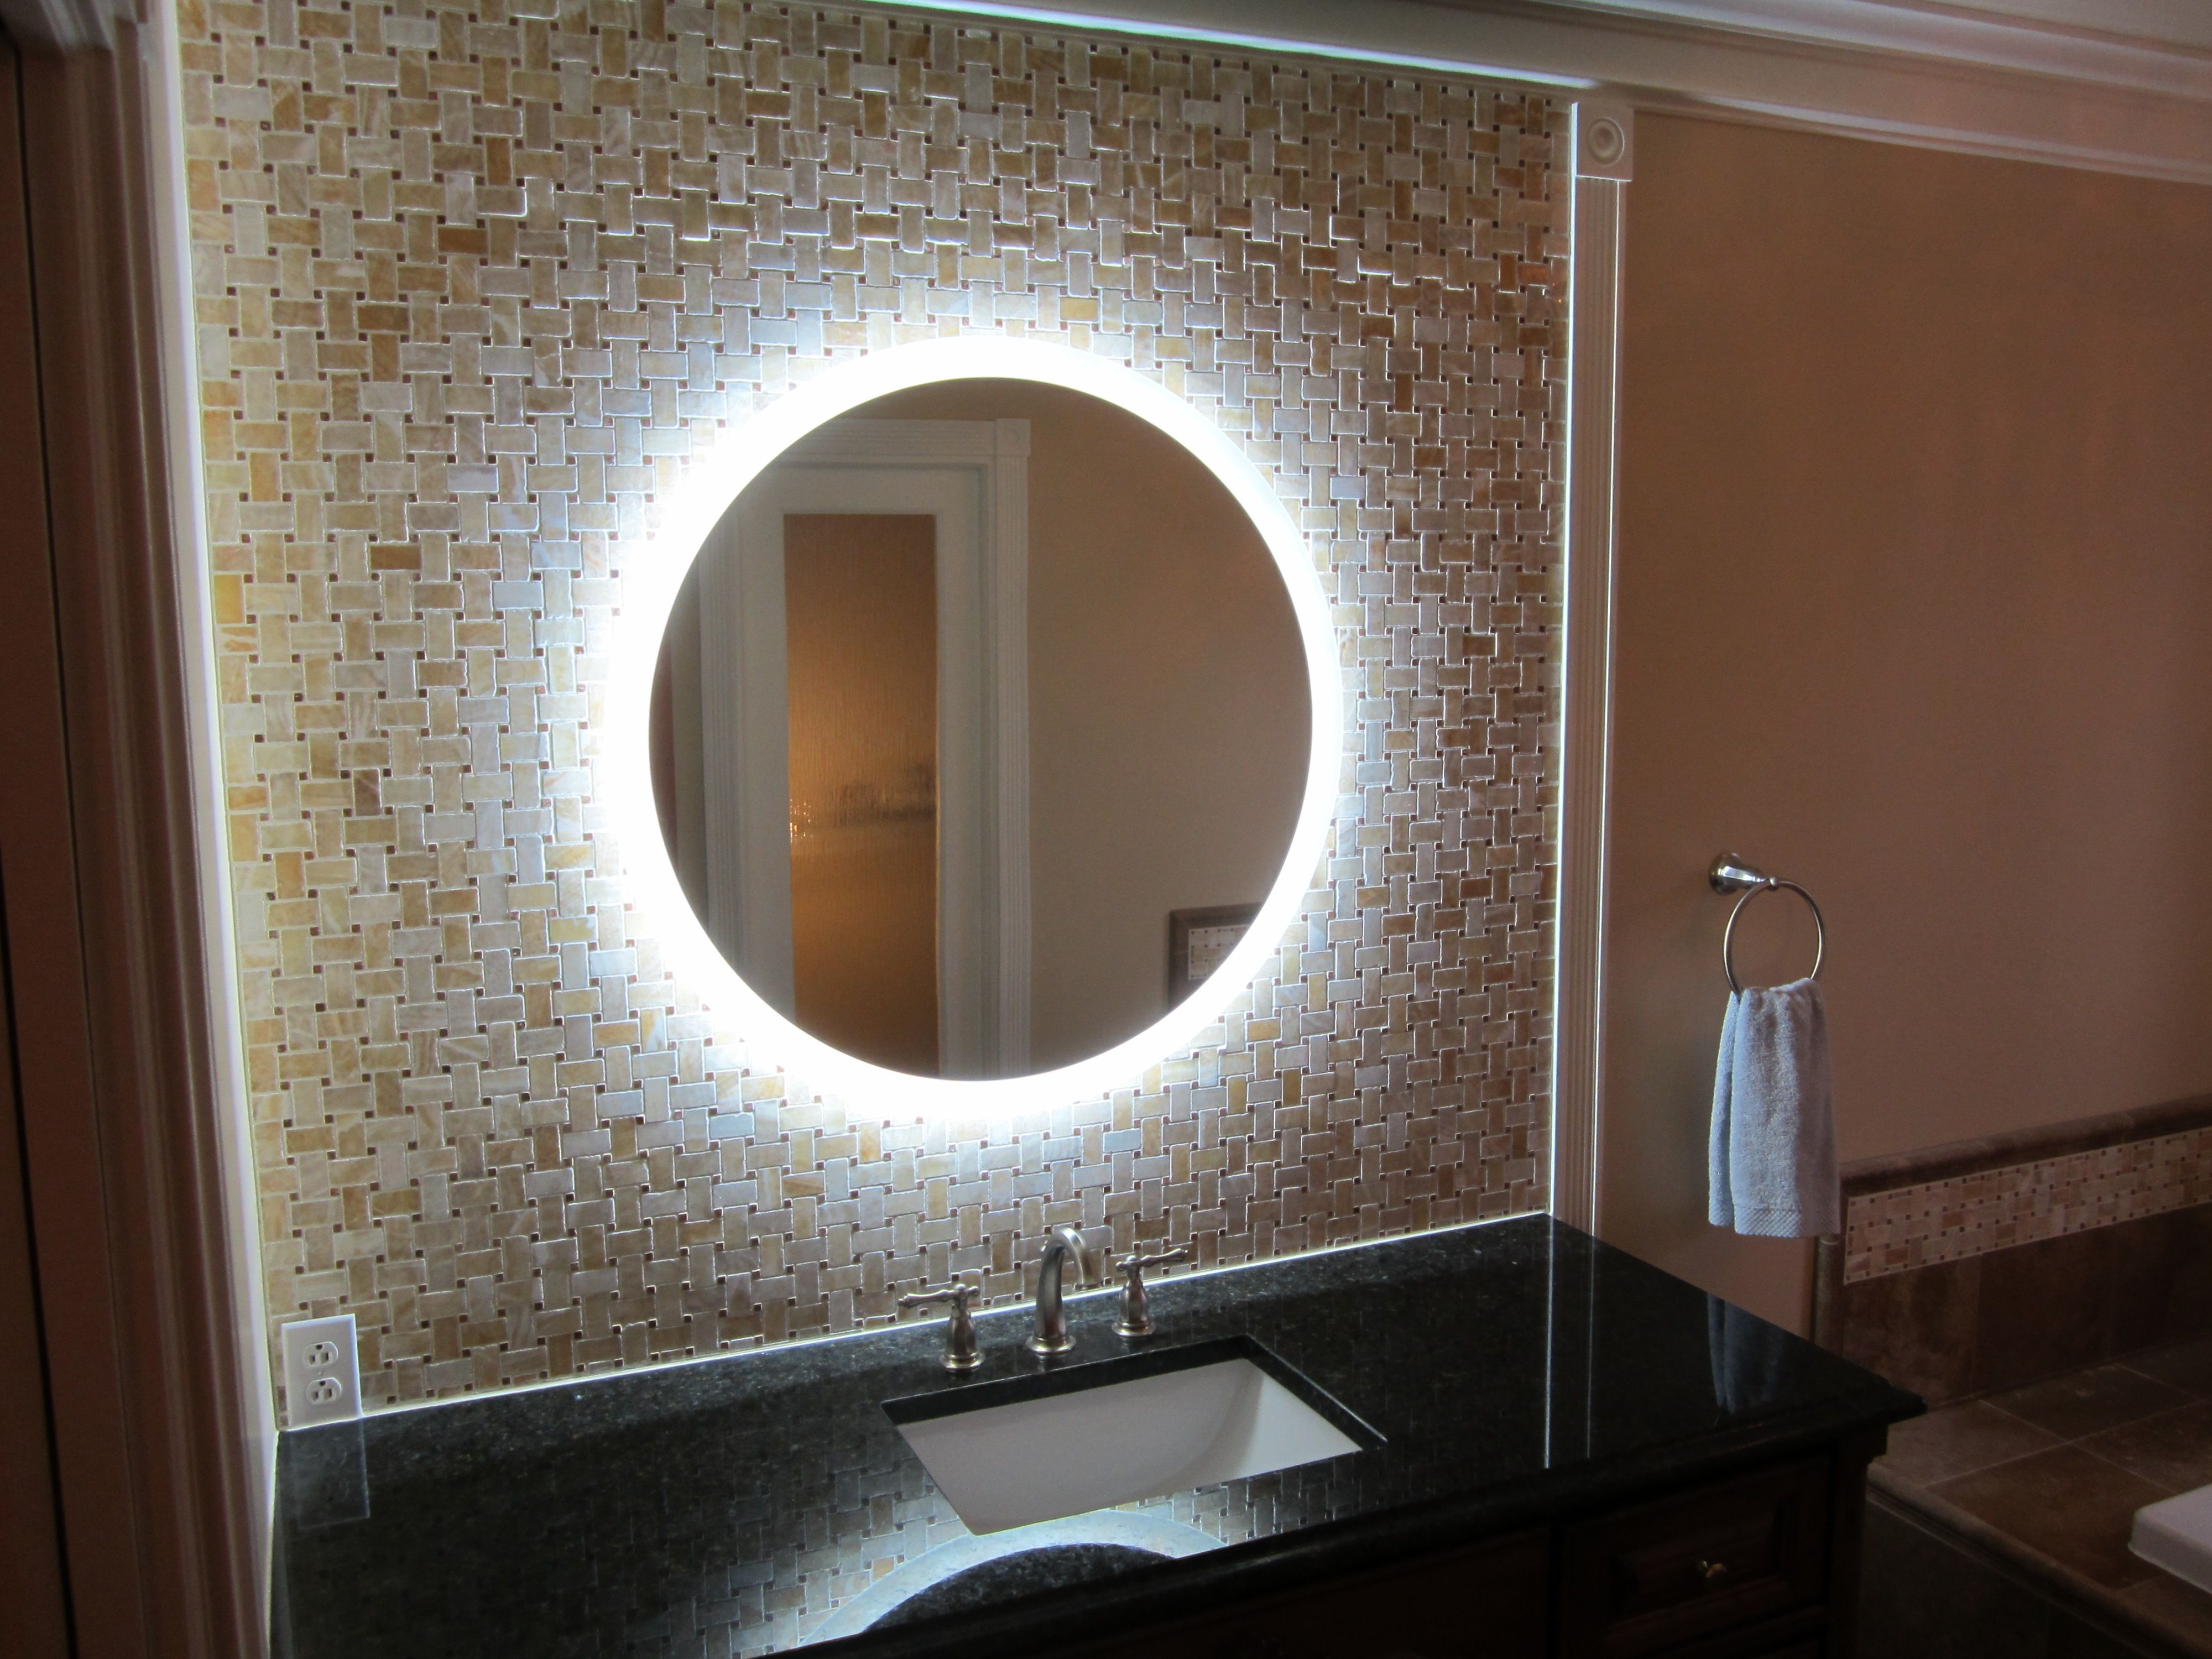 Round Wall Mounted Bathroom Mirrors